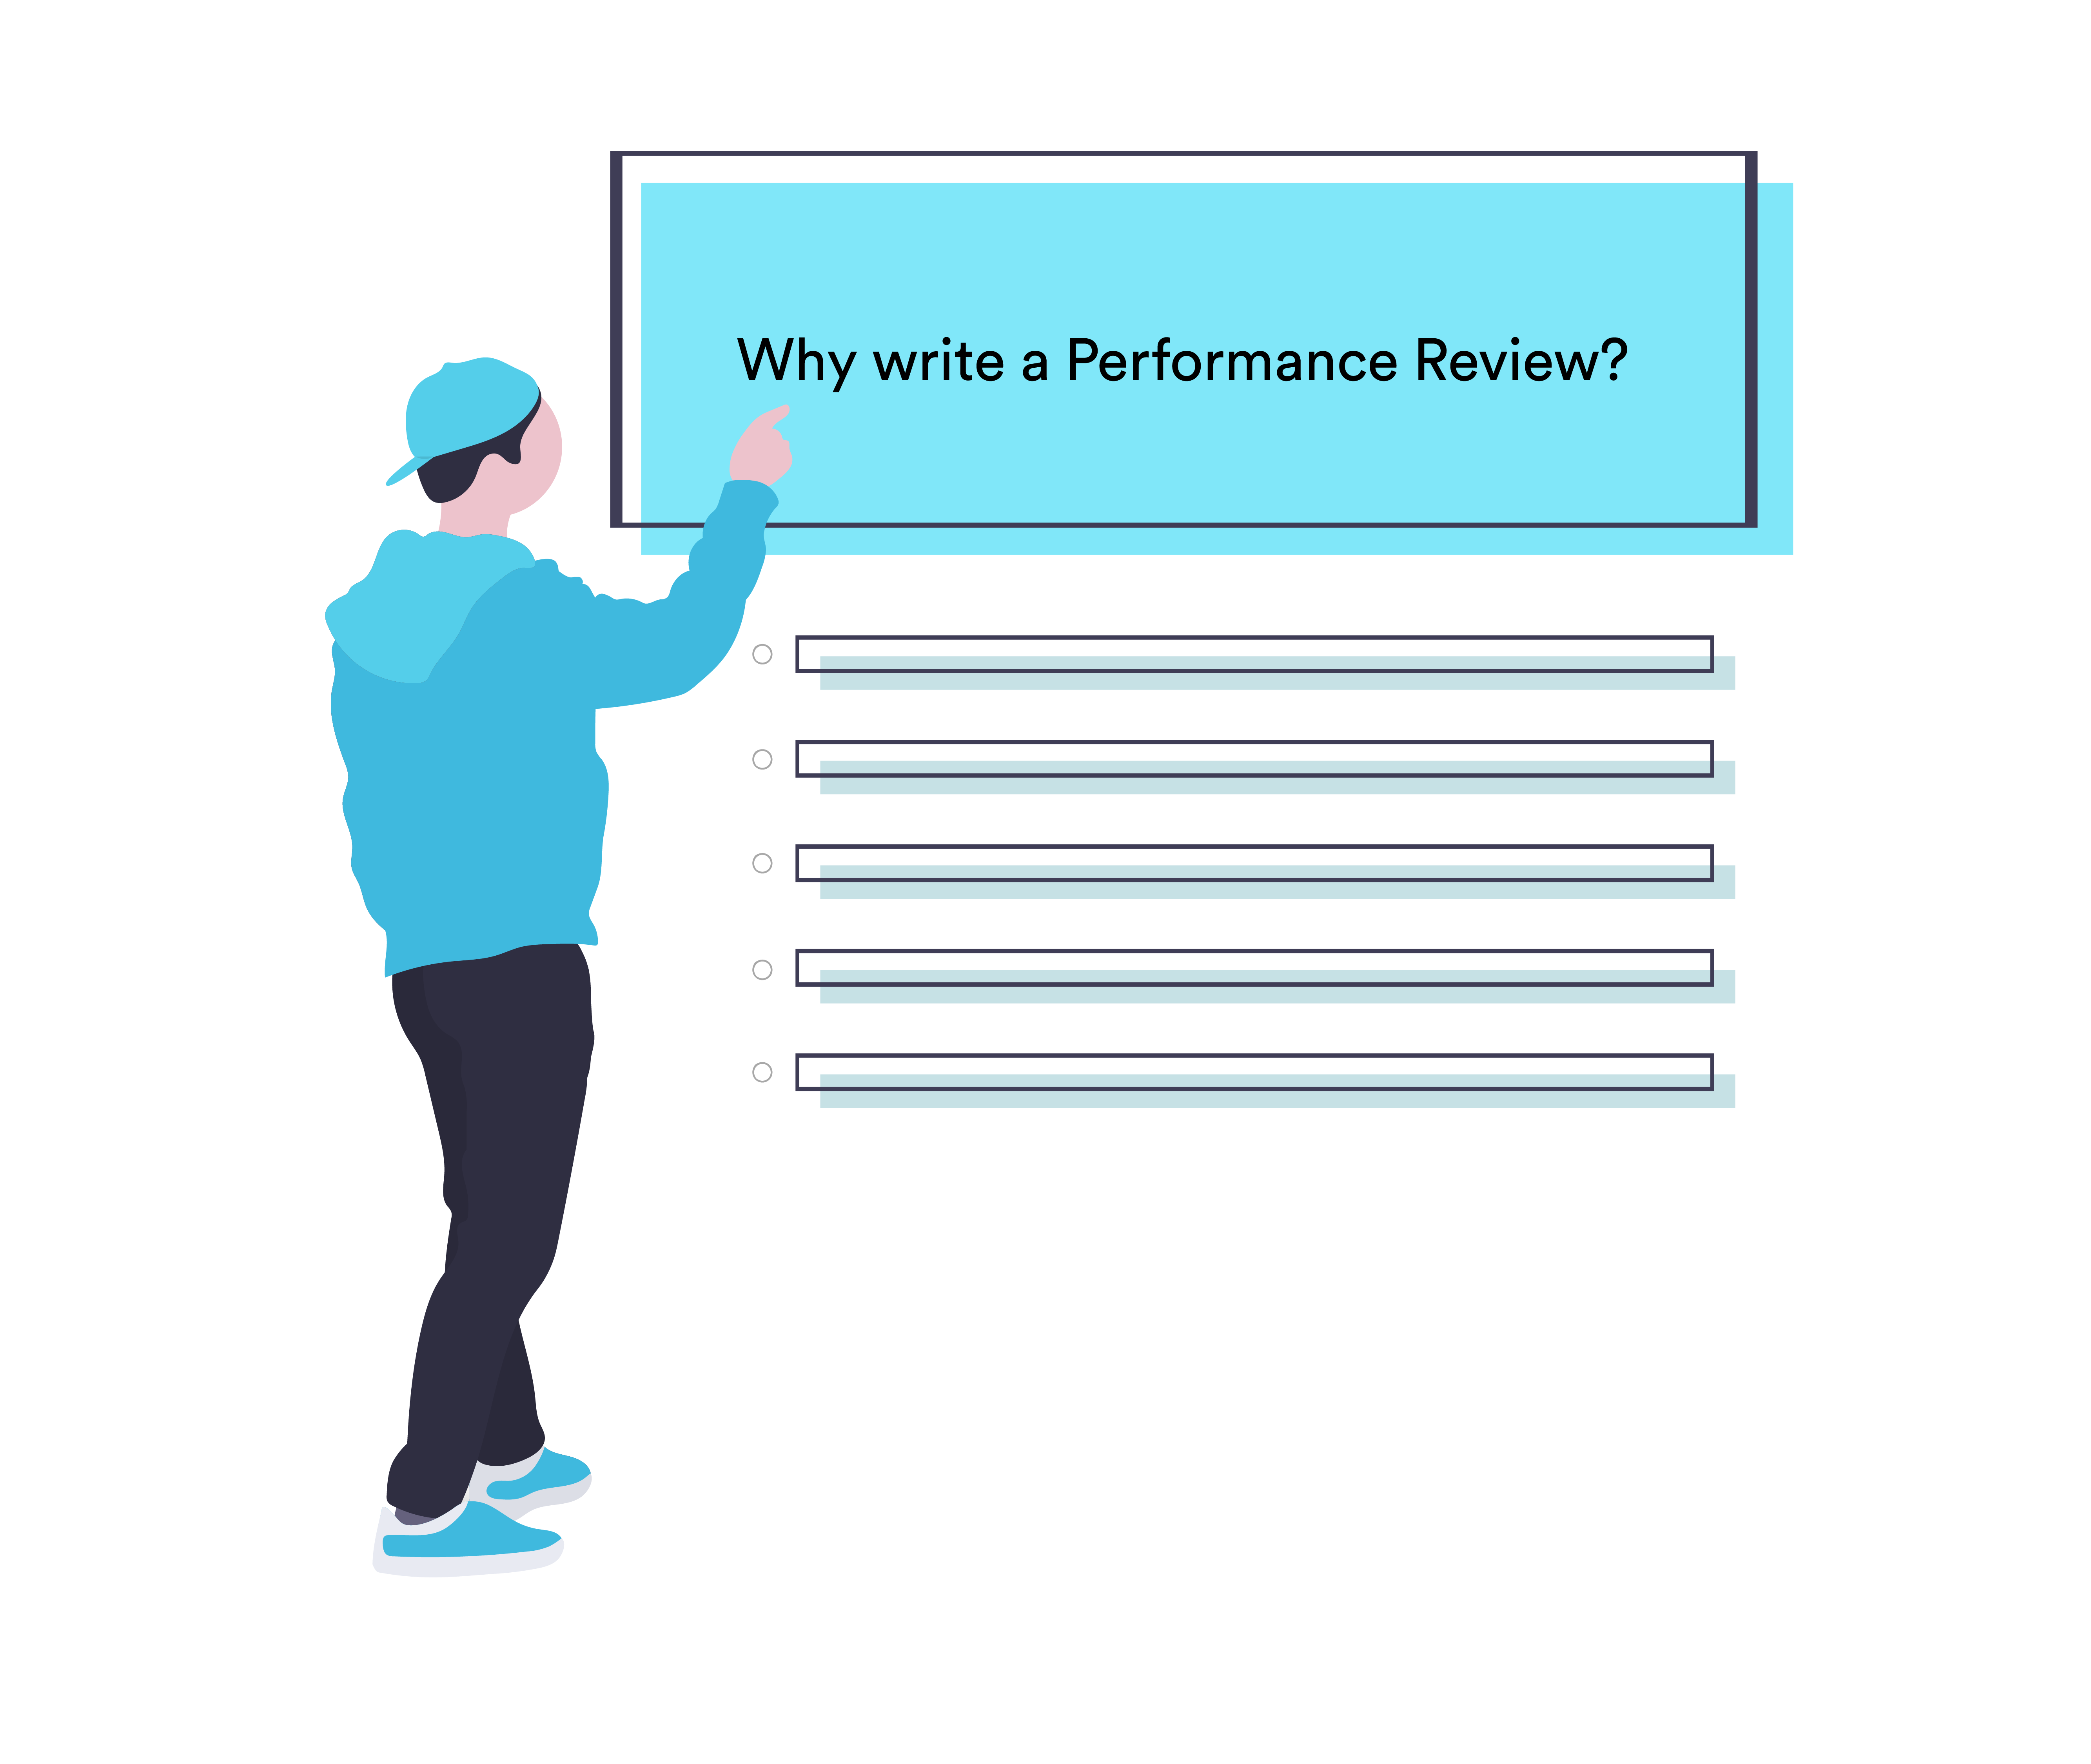 Why write a performance review?